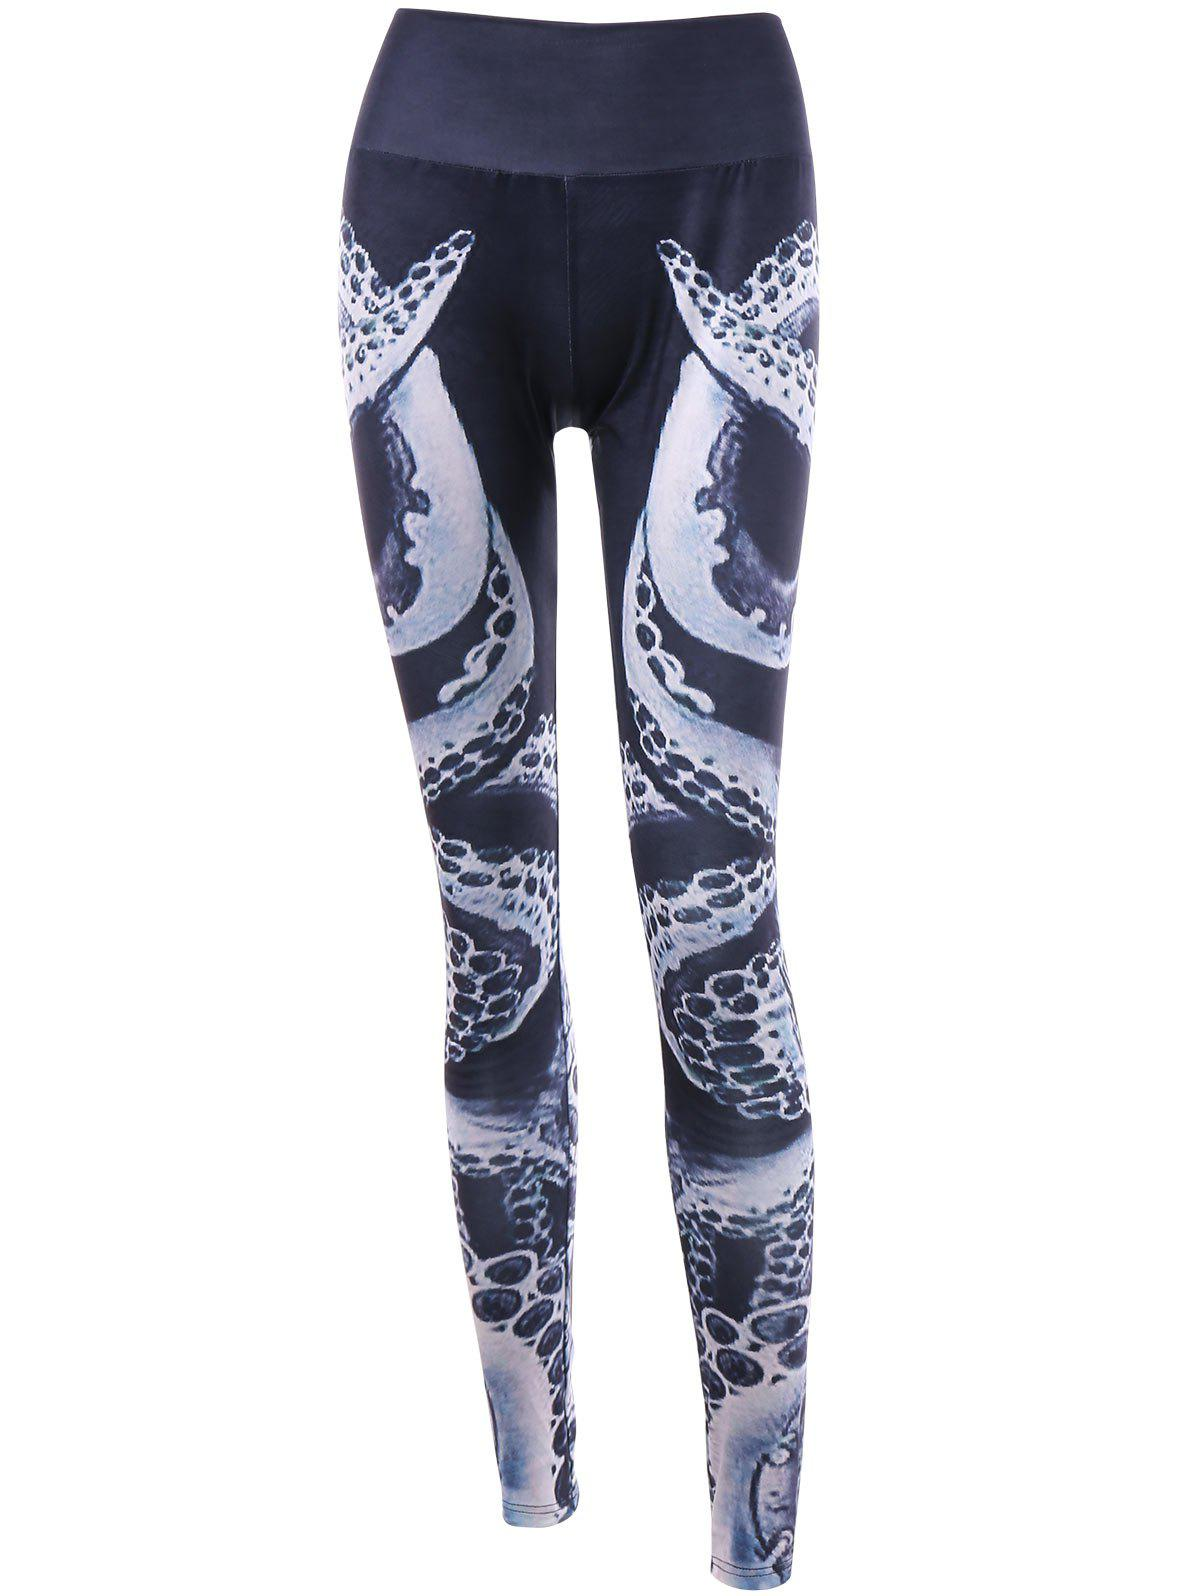 Octopus Printed High Waist Leggings - BLACK 2XL